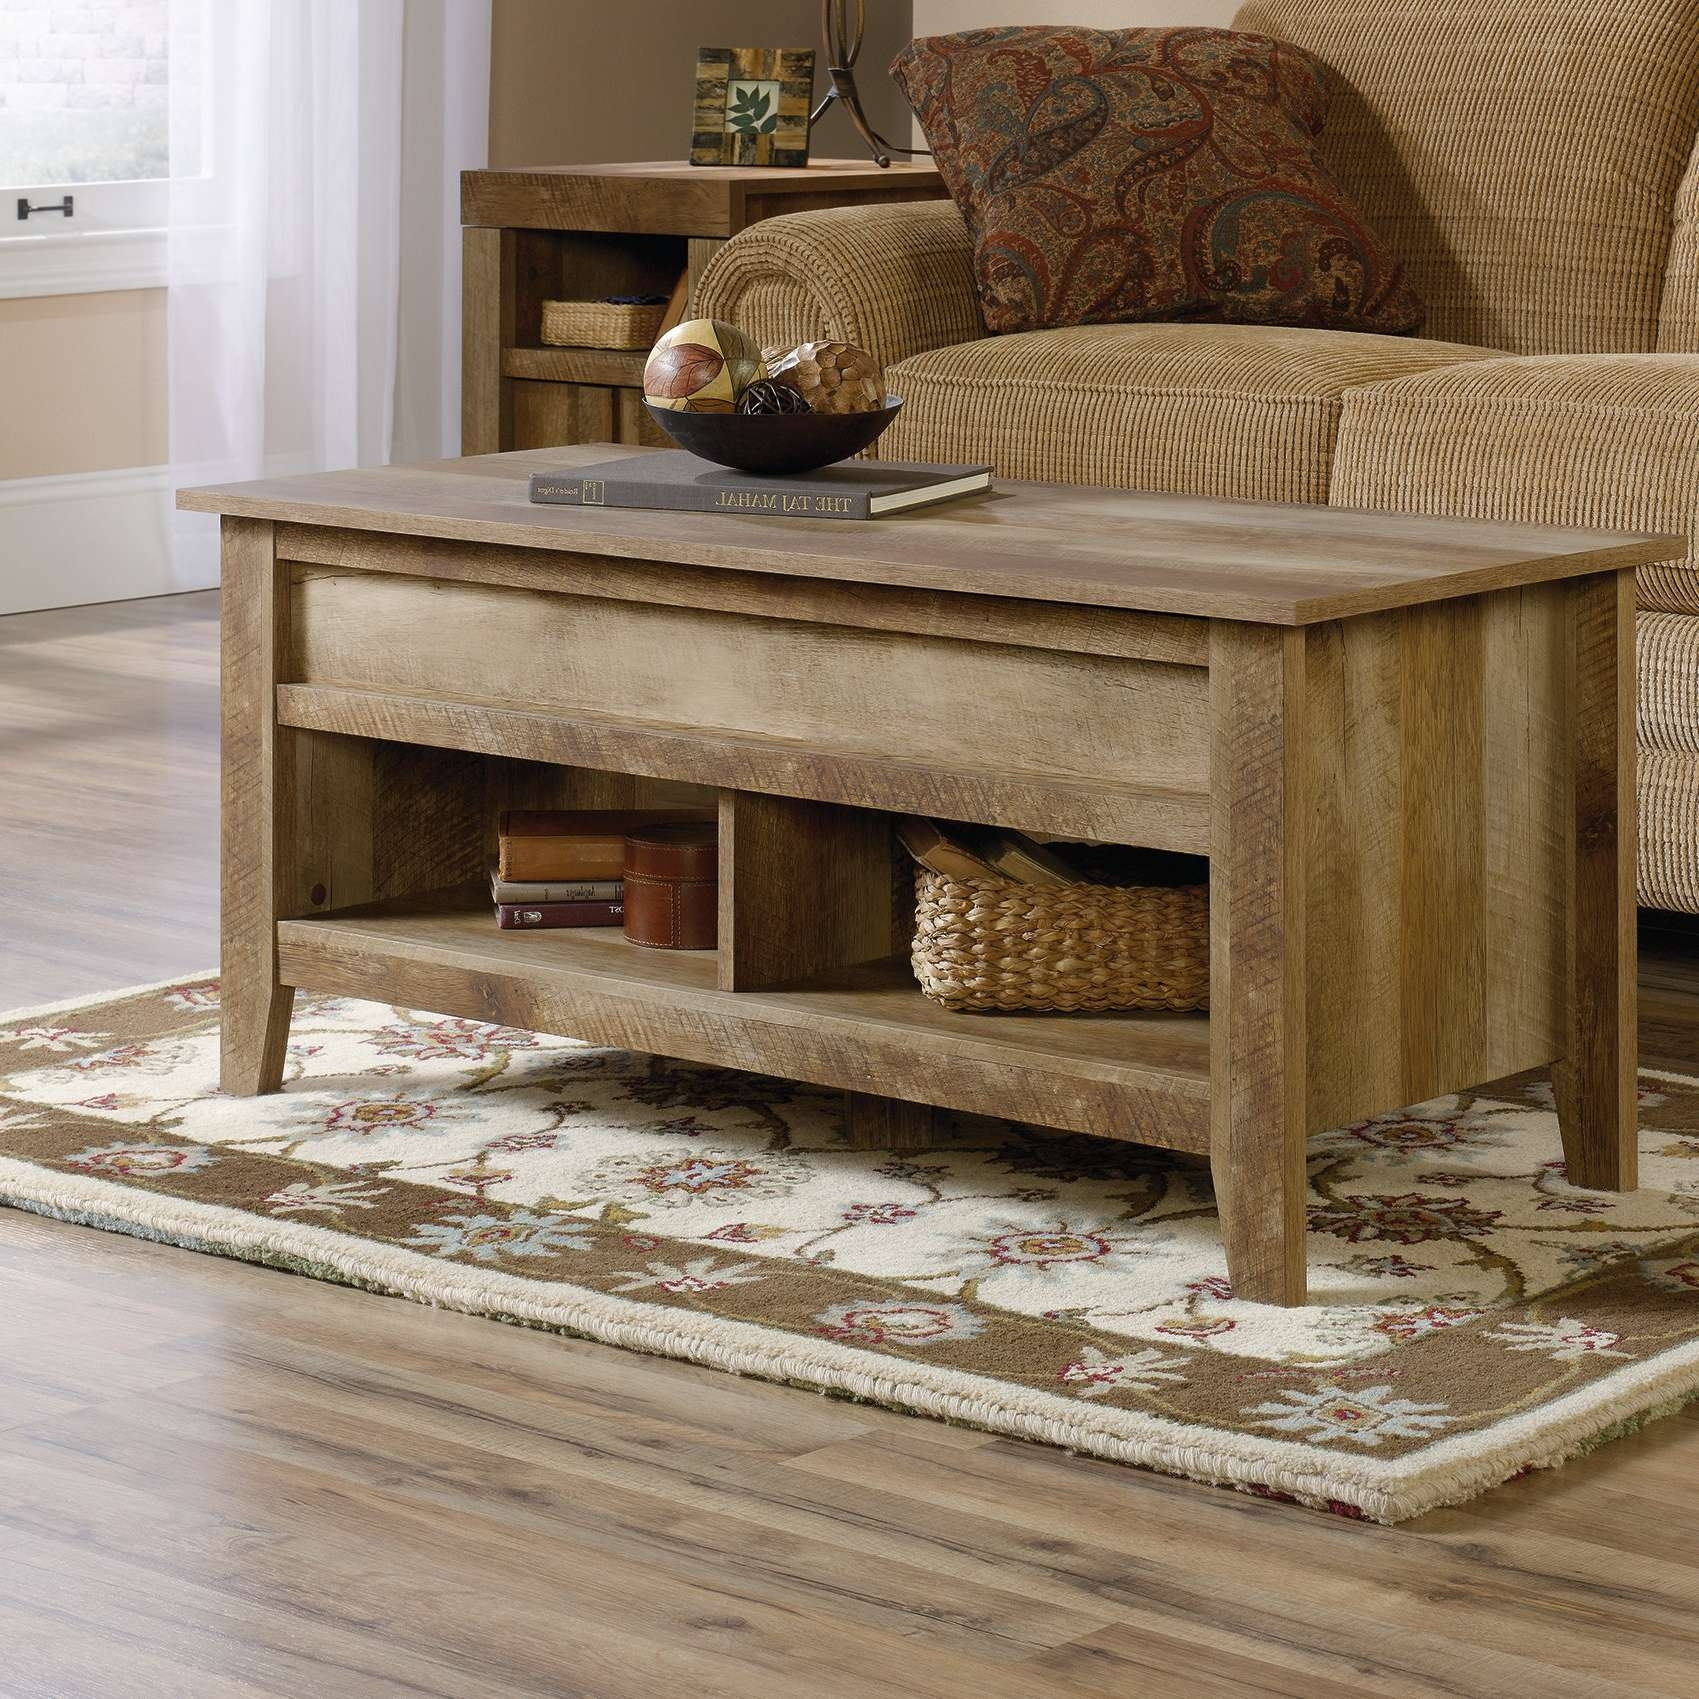 Famous Coffee Tables With Lift Top Storage Pertaining To Lift Top Coffee Tables You'll Love (View 4 of 20)